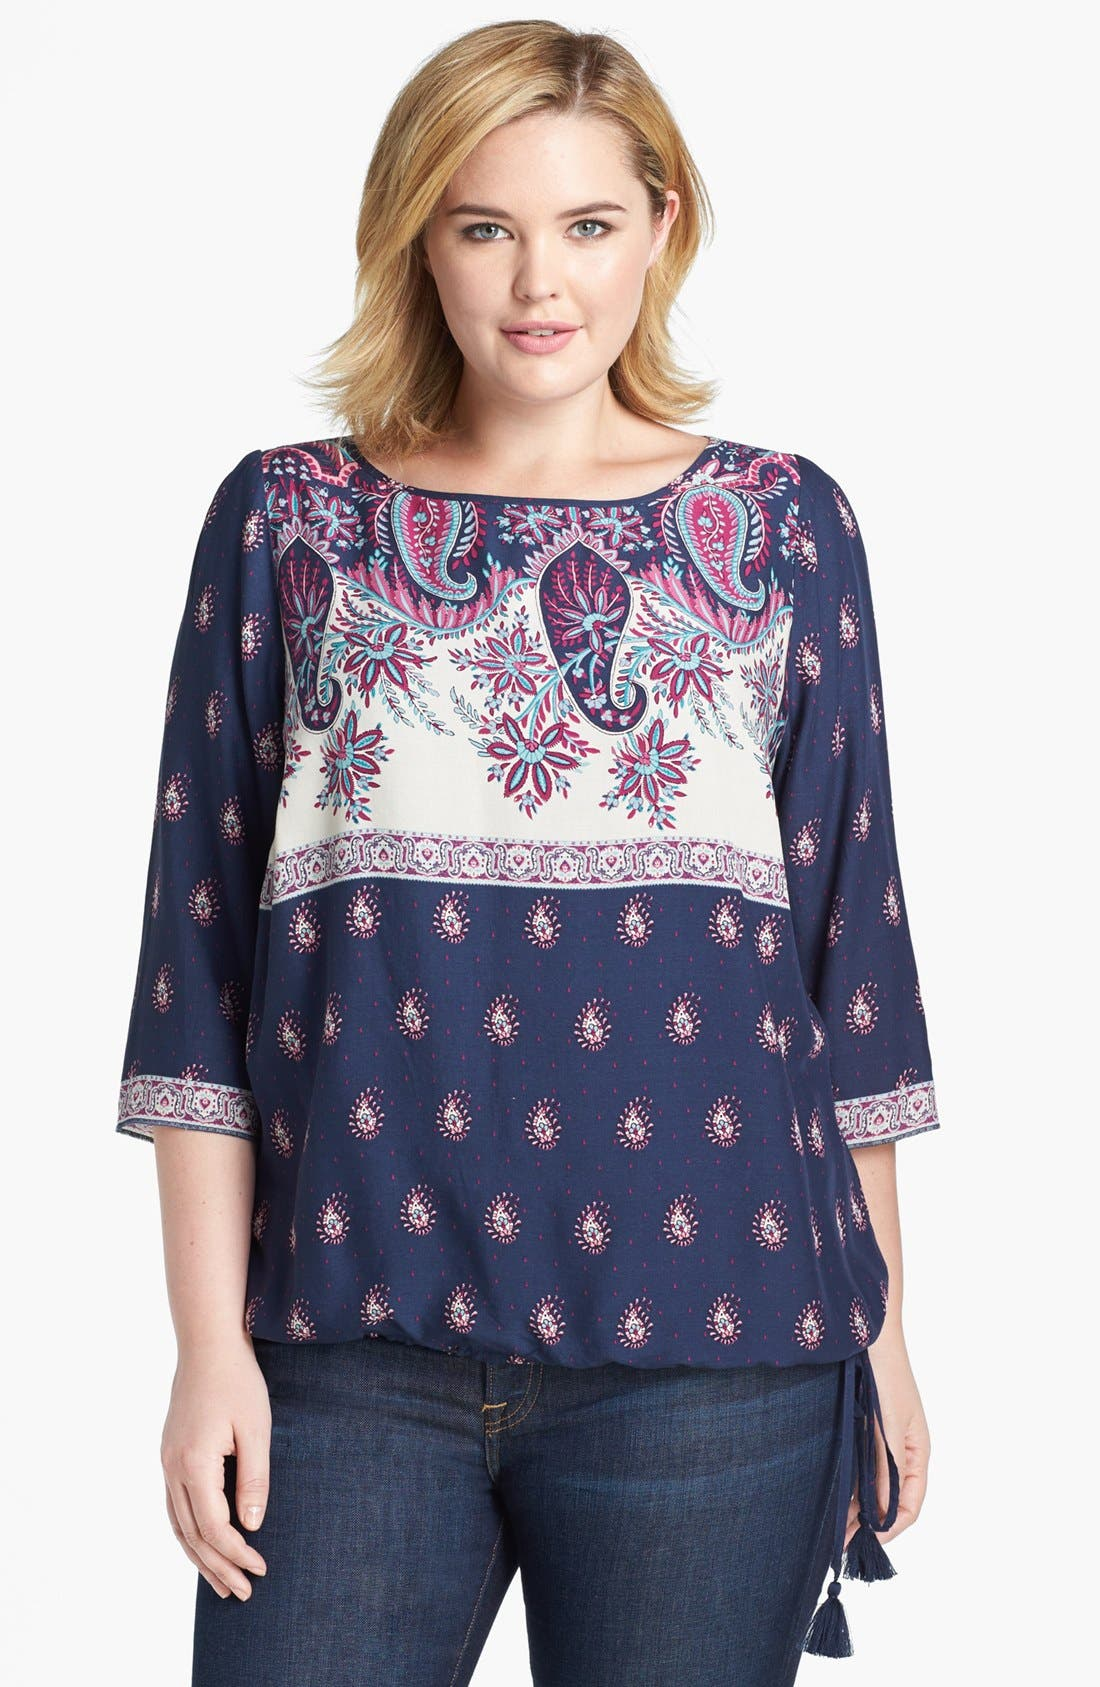 Alternate Image 1 Selected - Lucky Brand 'Larache' Mixed Print Blouson Top (Plus Size)